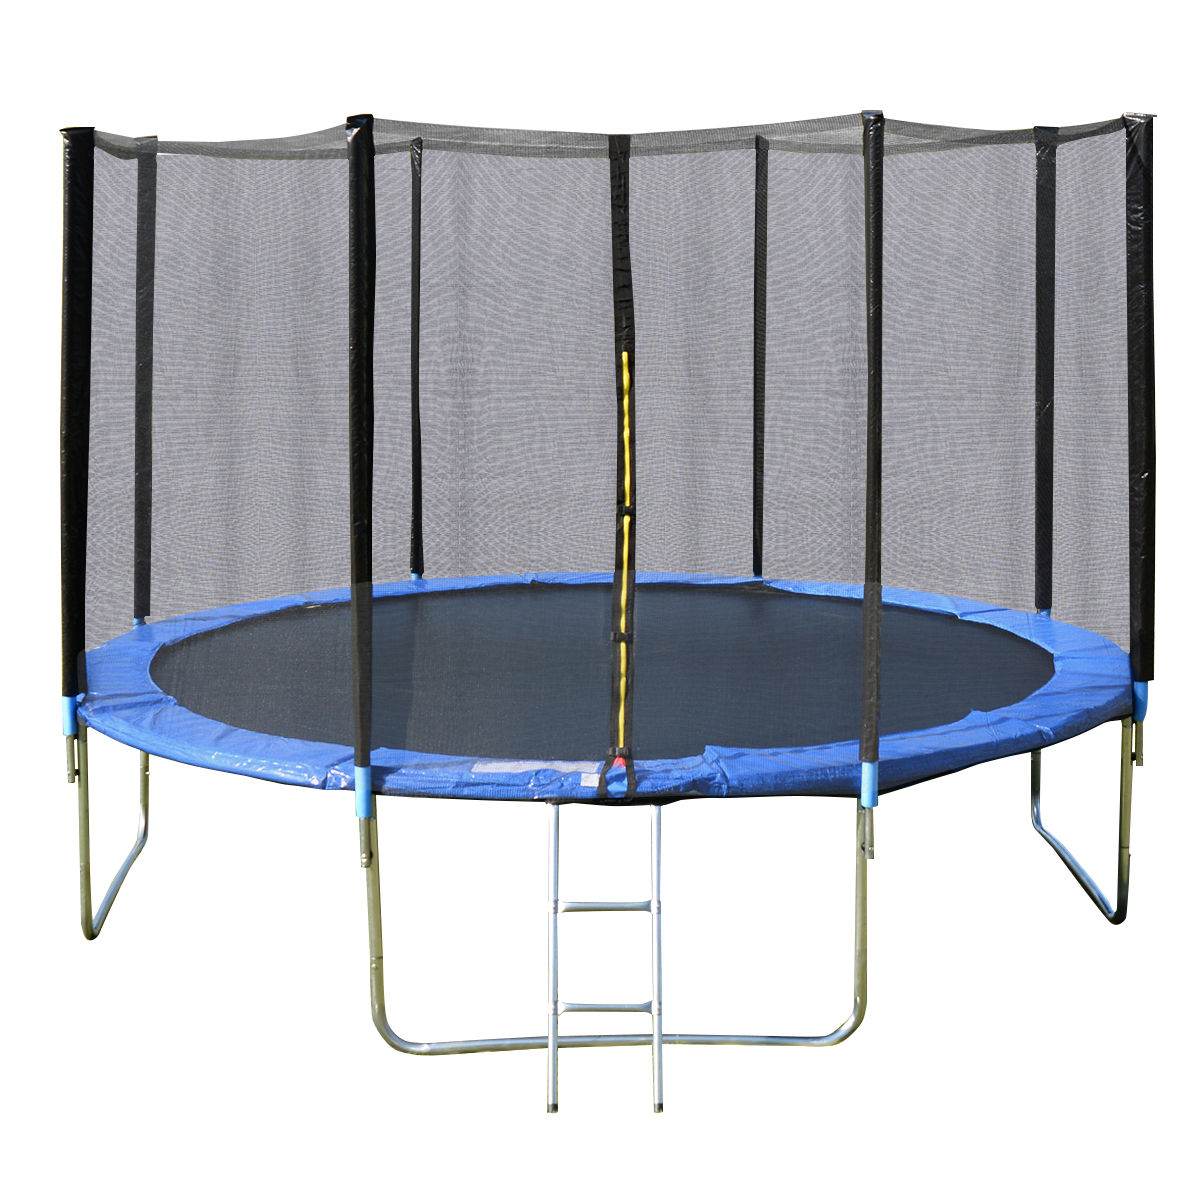 14 Ft Trampoline Combo Bounce Jump: NEW HEAVY DUTY TRAMPOLINE 14 FT WITH LADDER & SAFETY NET